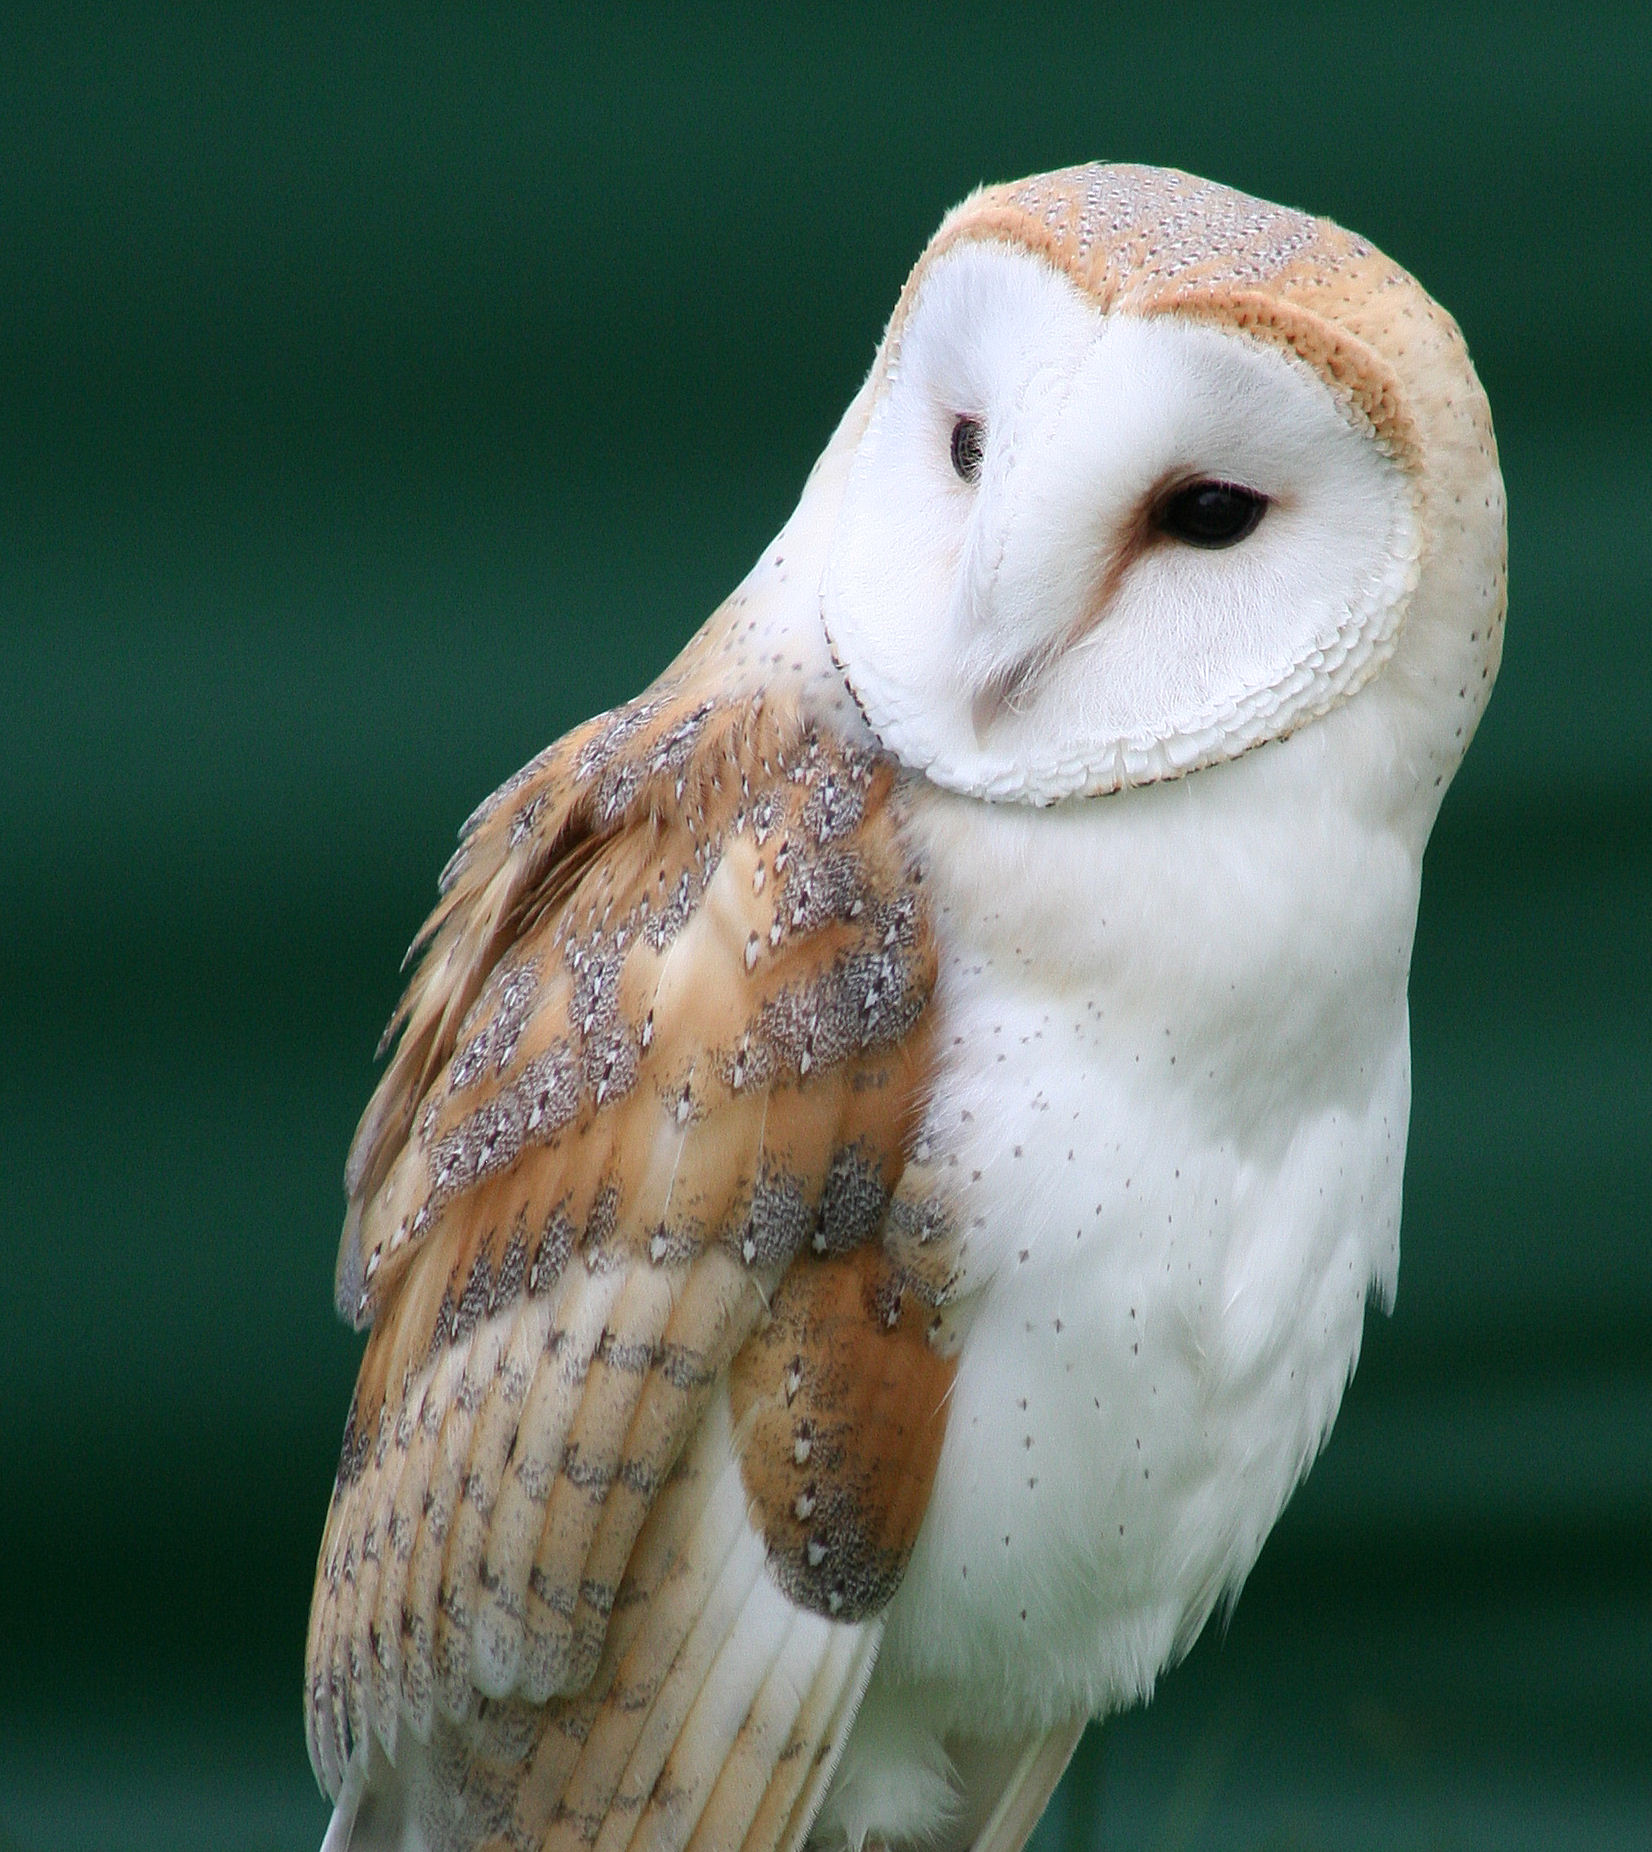 Tyto_alba_close_up.jpg